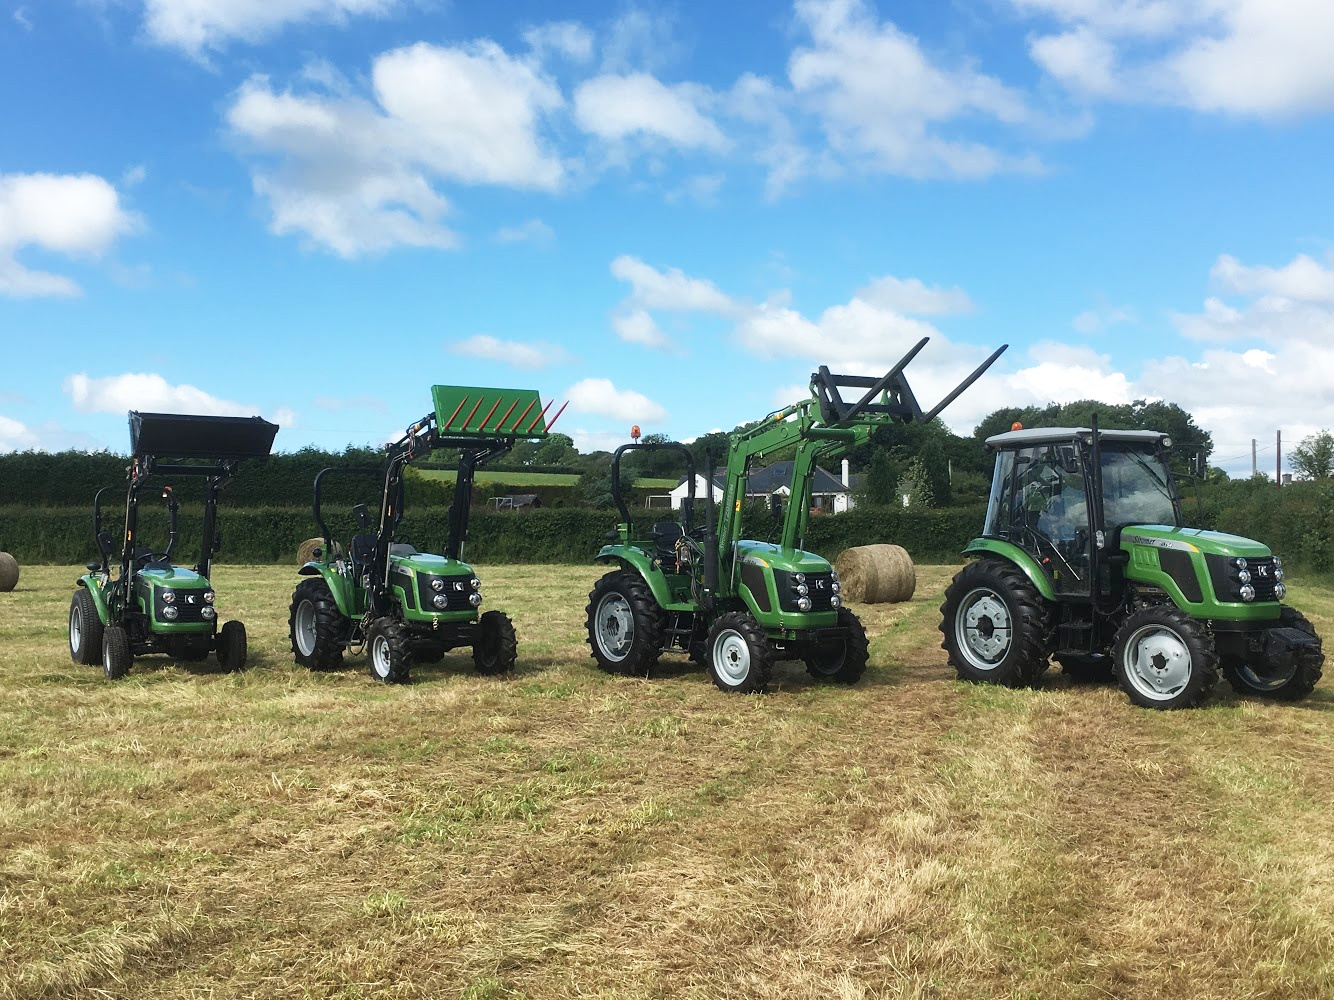 SIROMER – THE FLATPACK TRACTOR